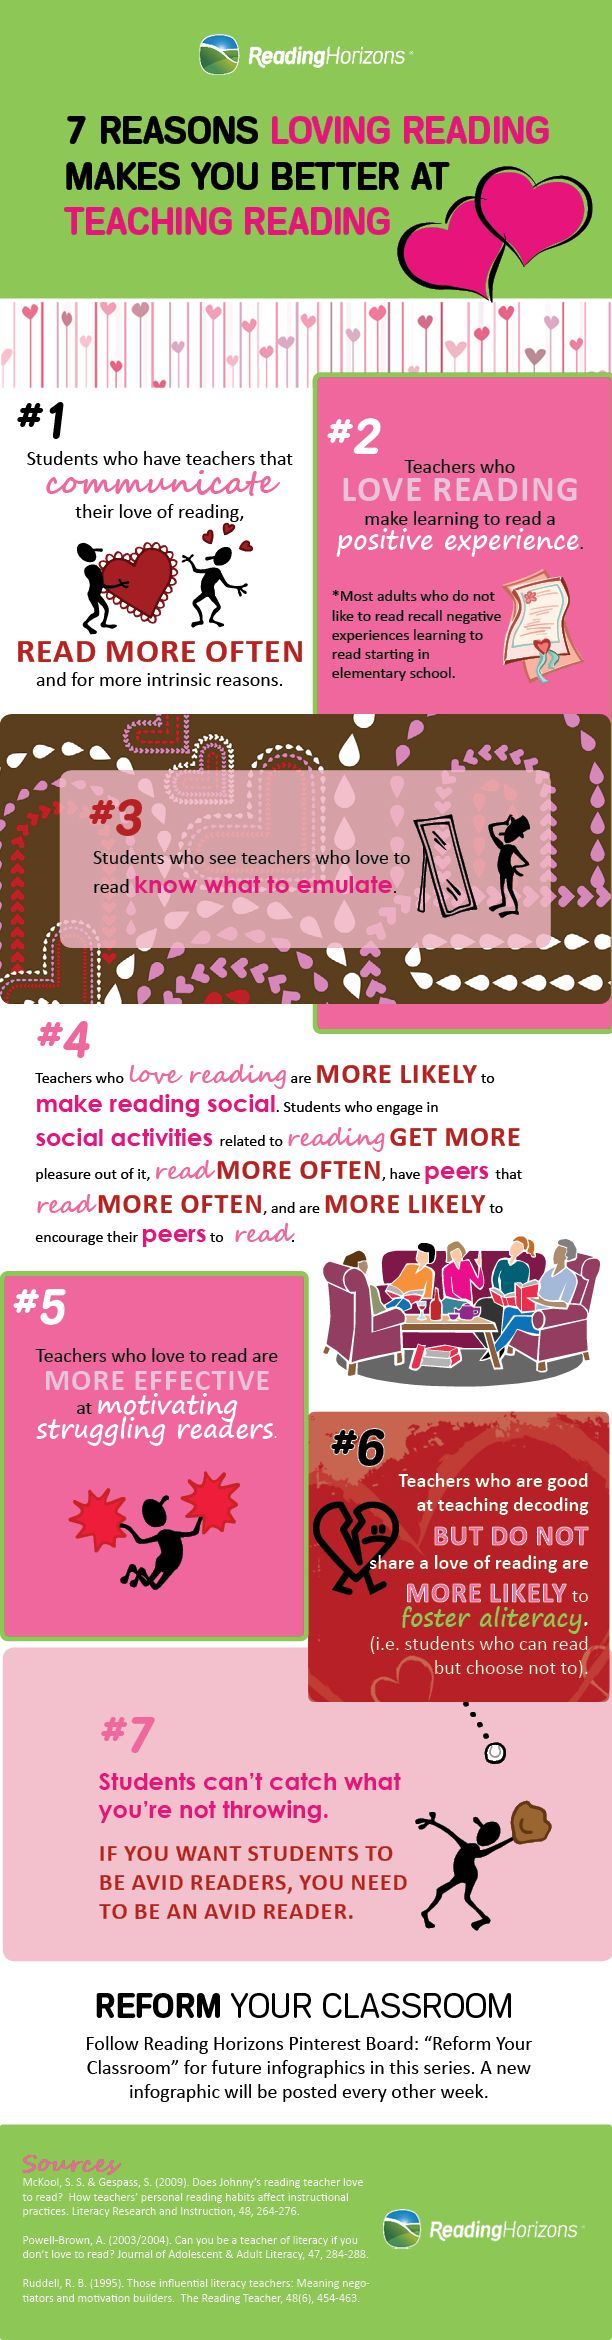 7 Reasons Loving Reading Makes You Better at Teaching Reading #infographic